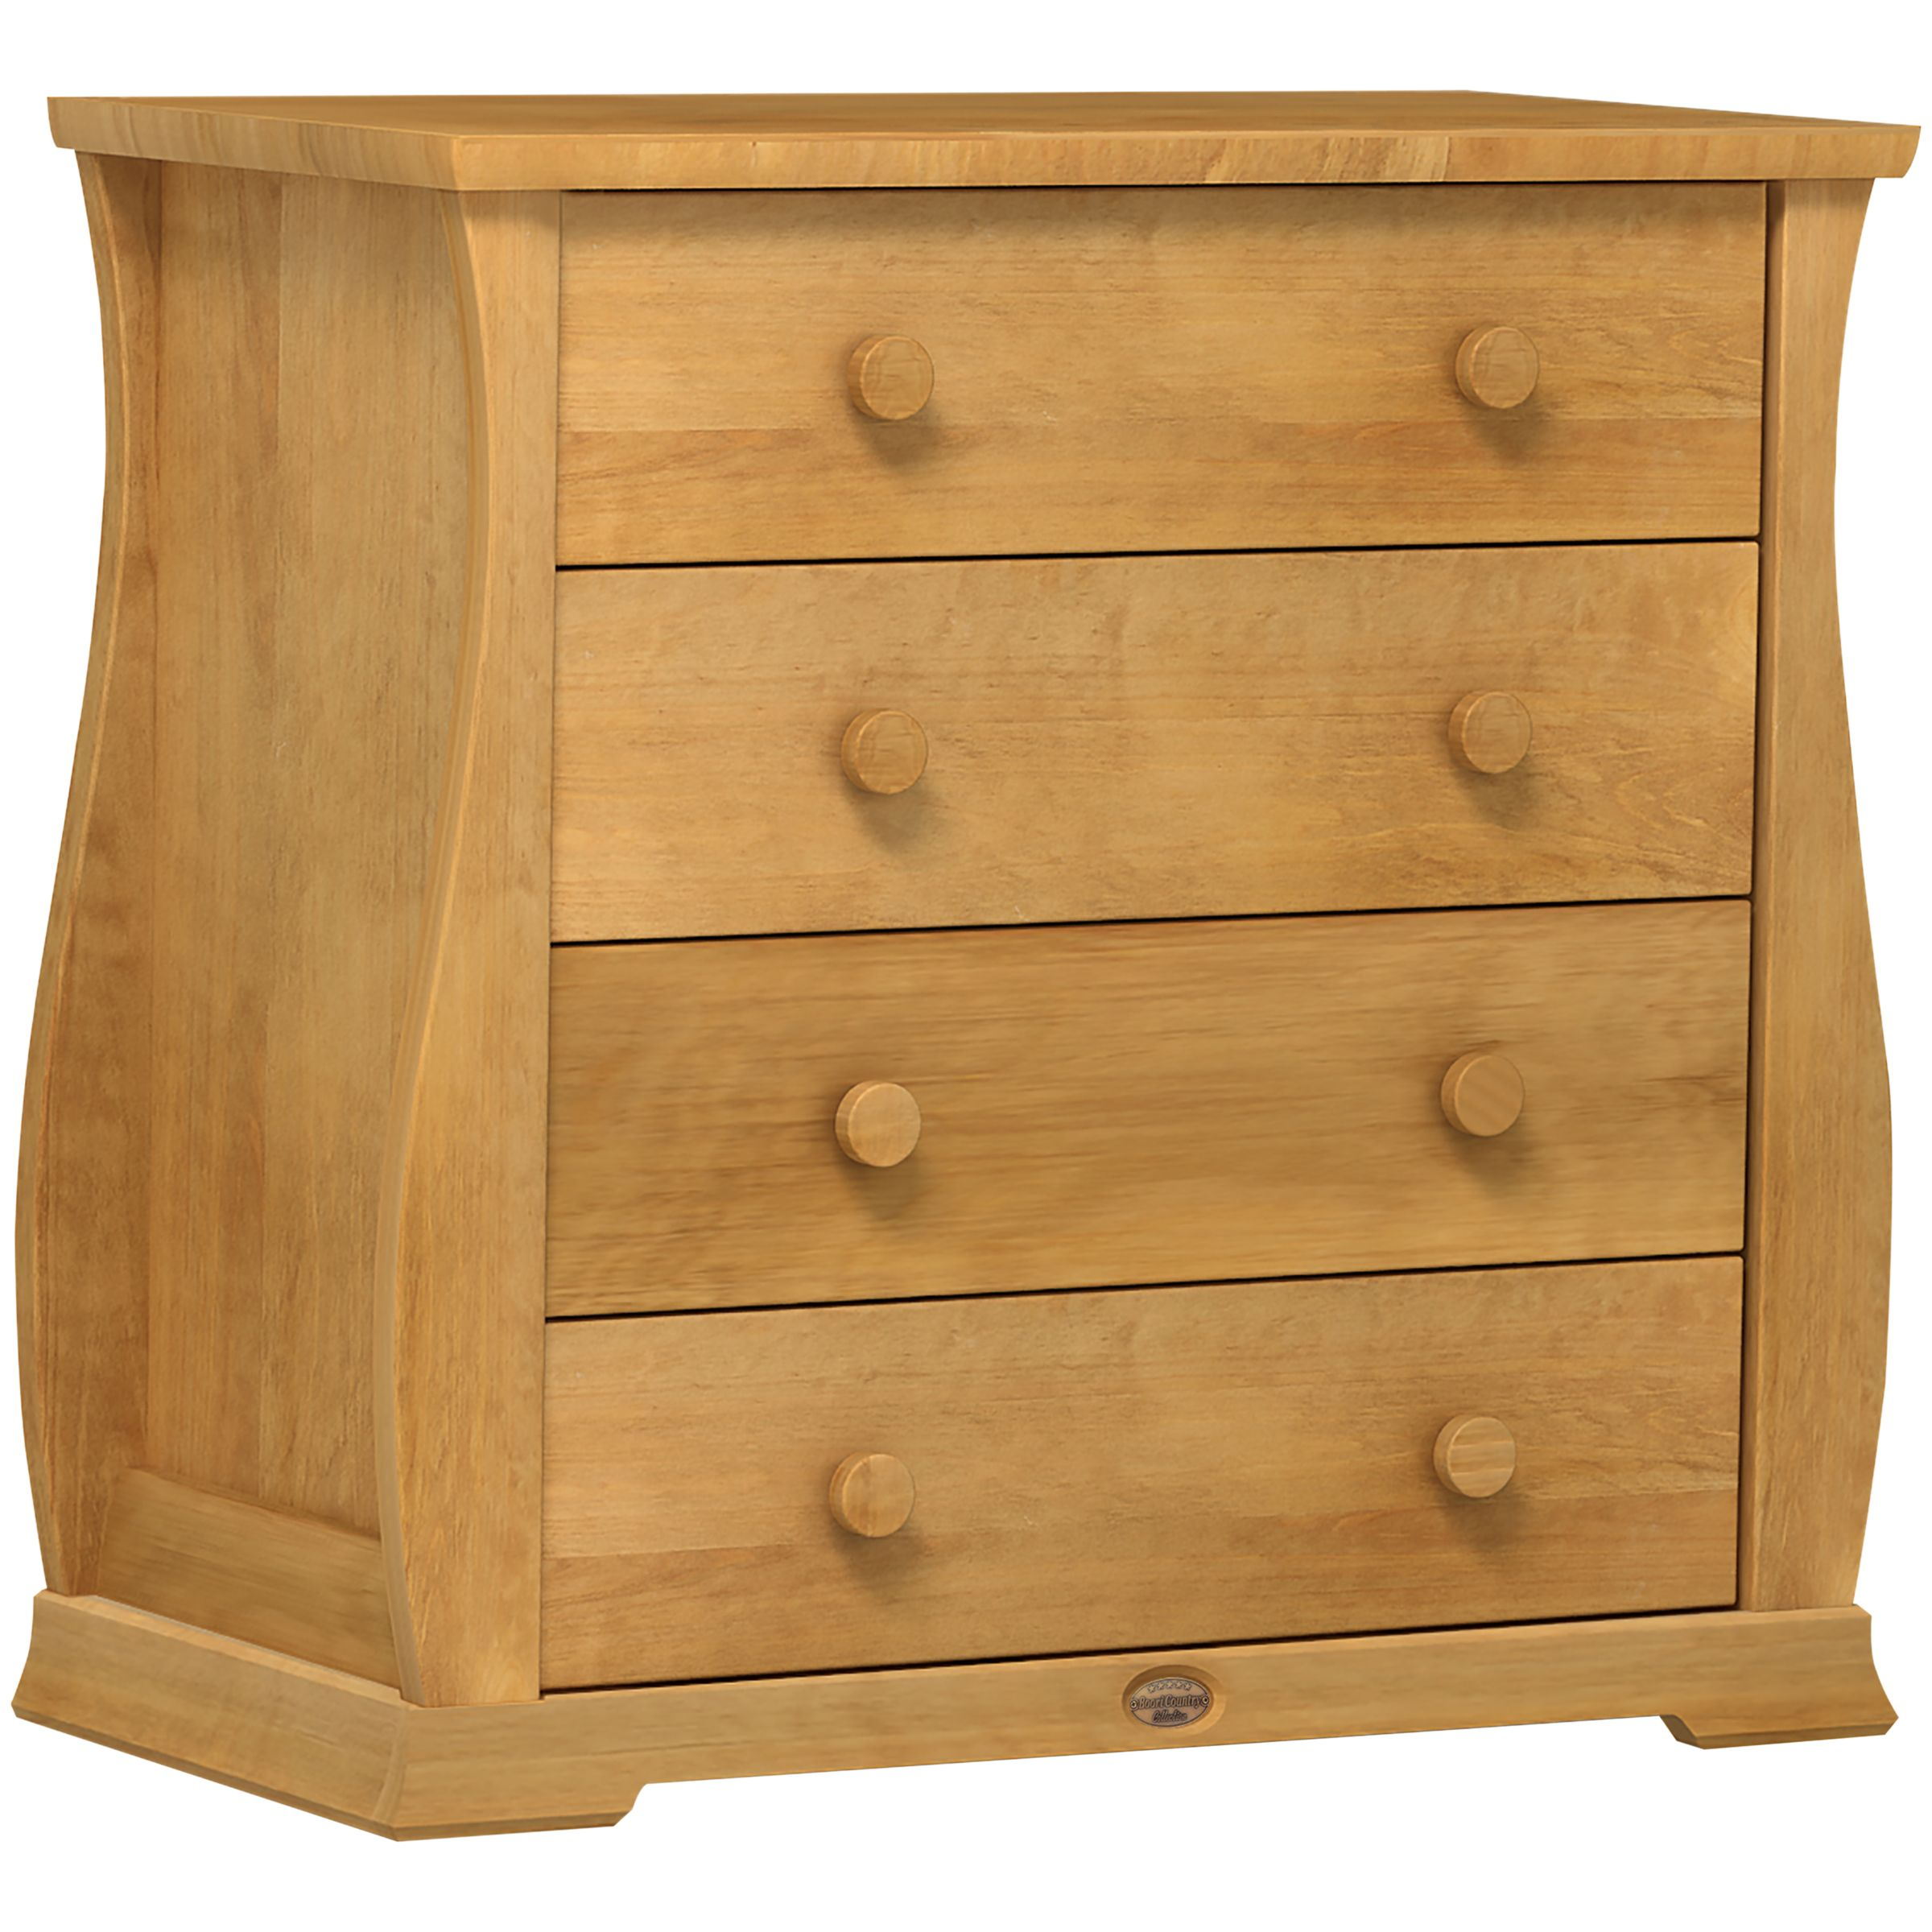 Sleigh 4 Drawer Chest, Heritage Teak